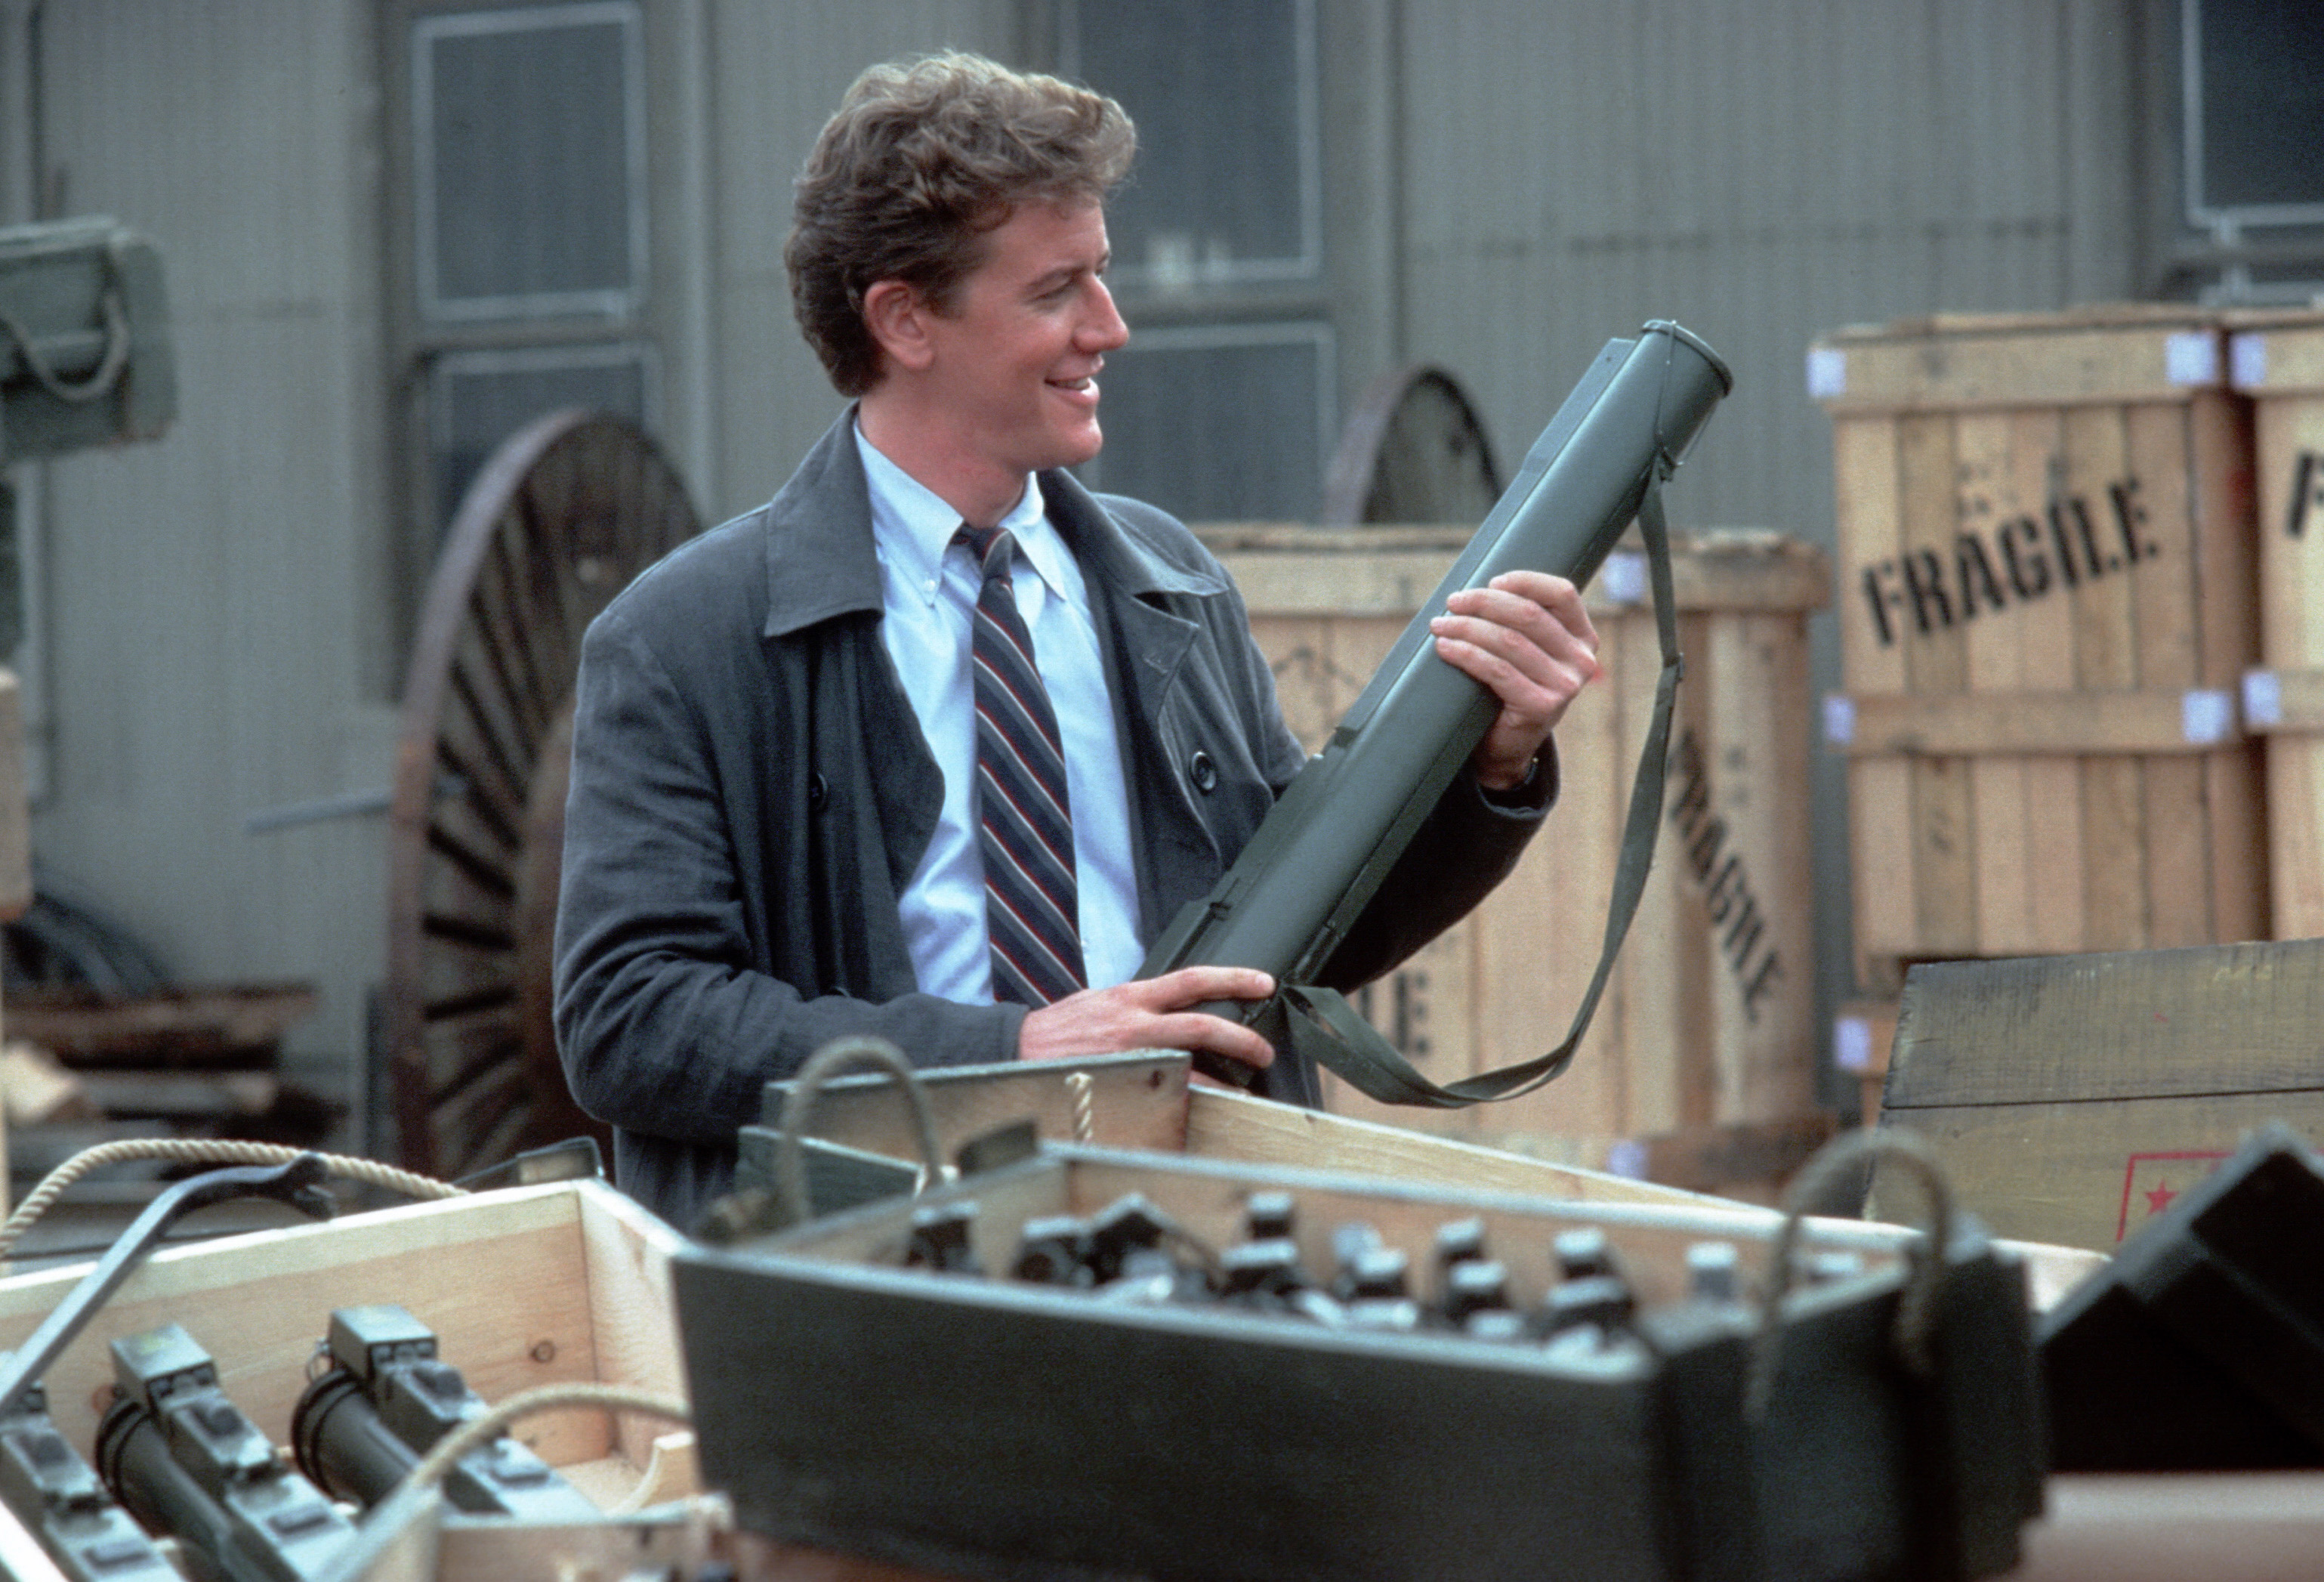 Judge Reinhold interpreta o oficial Billy Rosewood